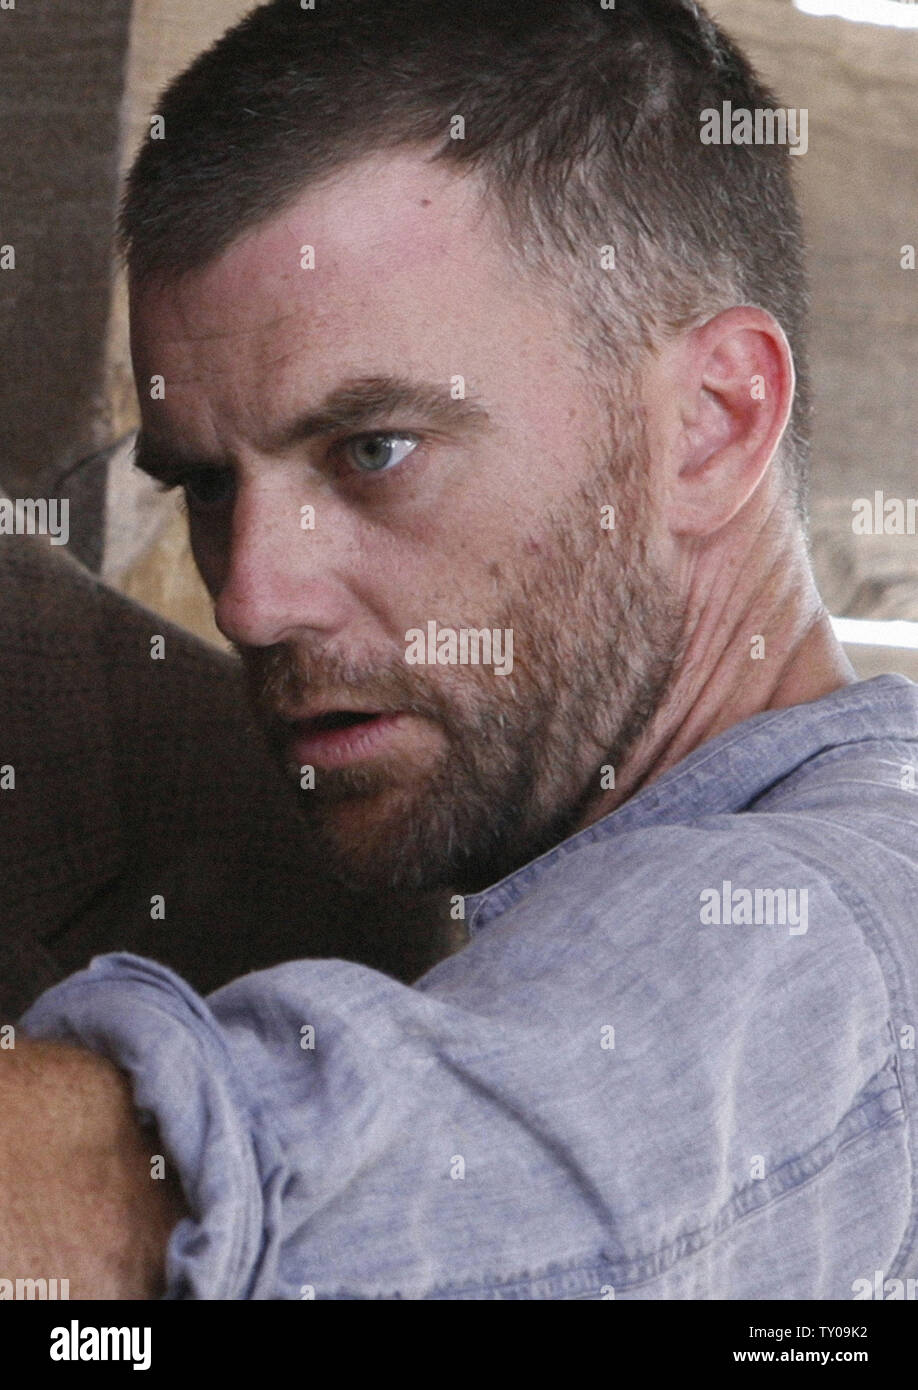 This publicity photo from the film 'There Will Be Blood' provided by the film studios Paramount Vantage and Miramax shows Paul Thomas Anderson, the nominee for best director for the 80th annual Academy Awards in Beverly Hills, California early Tuesday morning, January 22, 2008.  (UPI Photo/Melinda Sue Gordon) - Stock Image